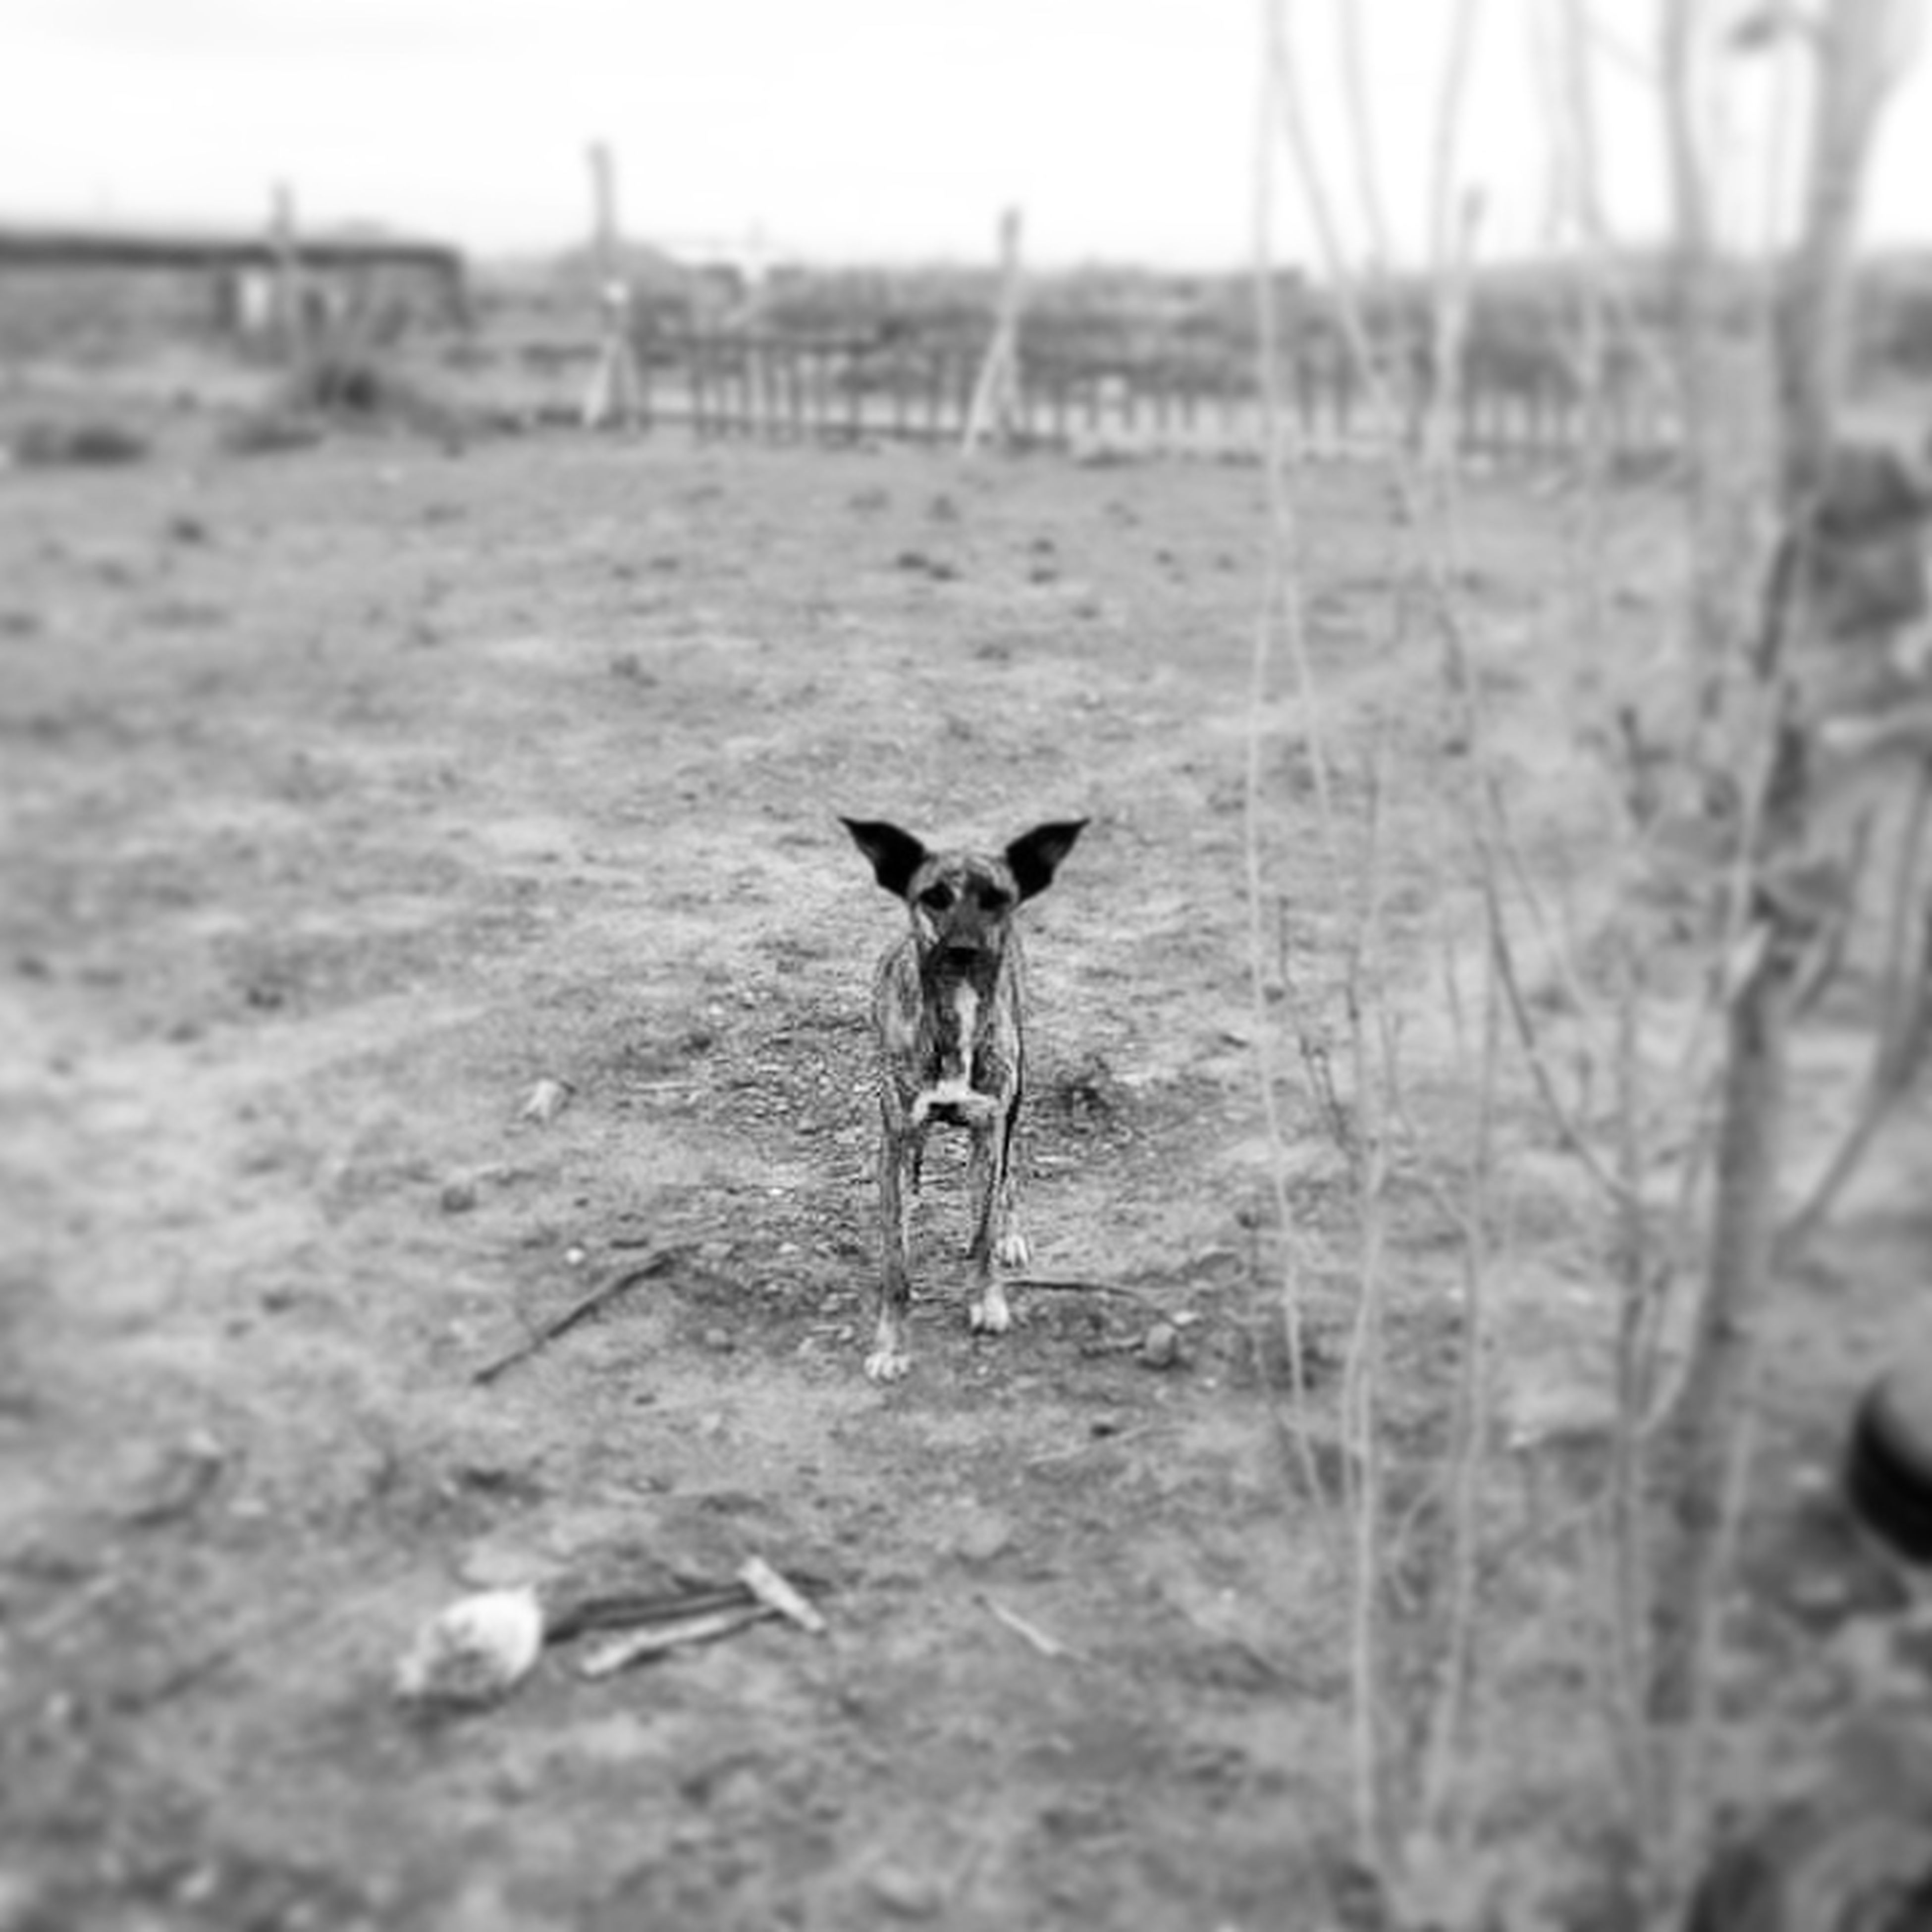 animal themes, mammal, one animal, domestic animals, pets, field, standing, selective focus, looking at camera, portrait, running, grass, dog, full length, focus on foreground, walking, landscape, nature, outdoors, day